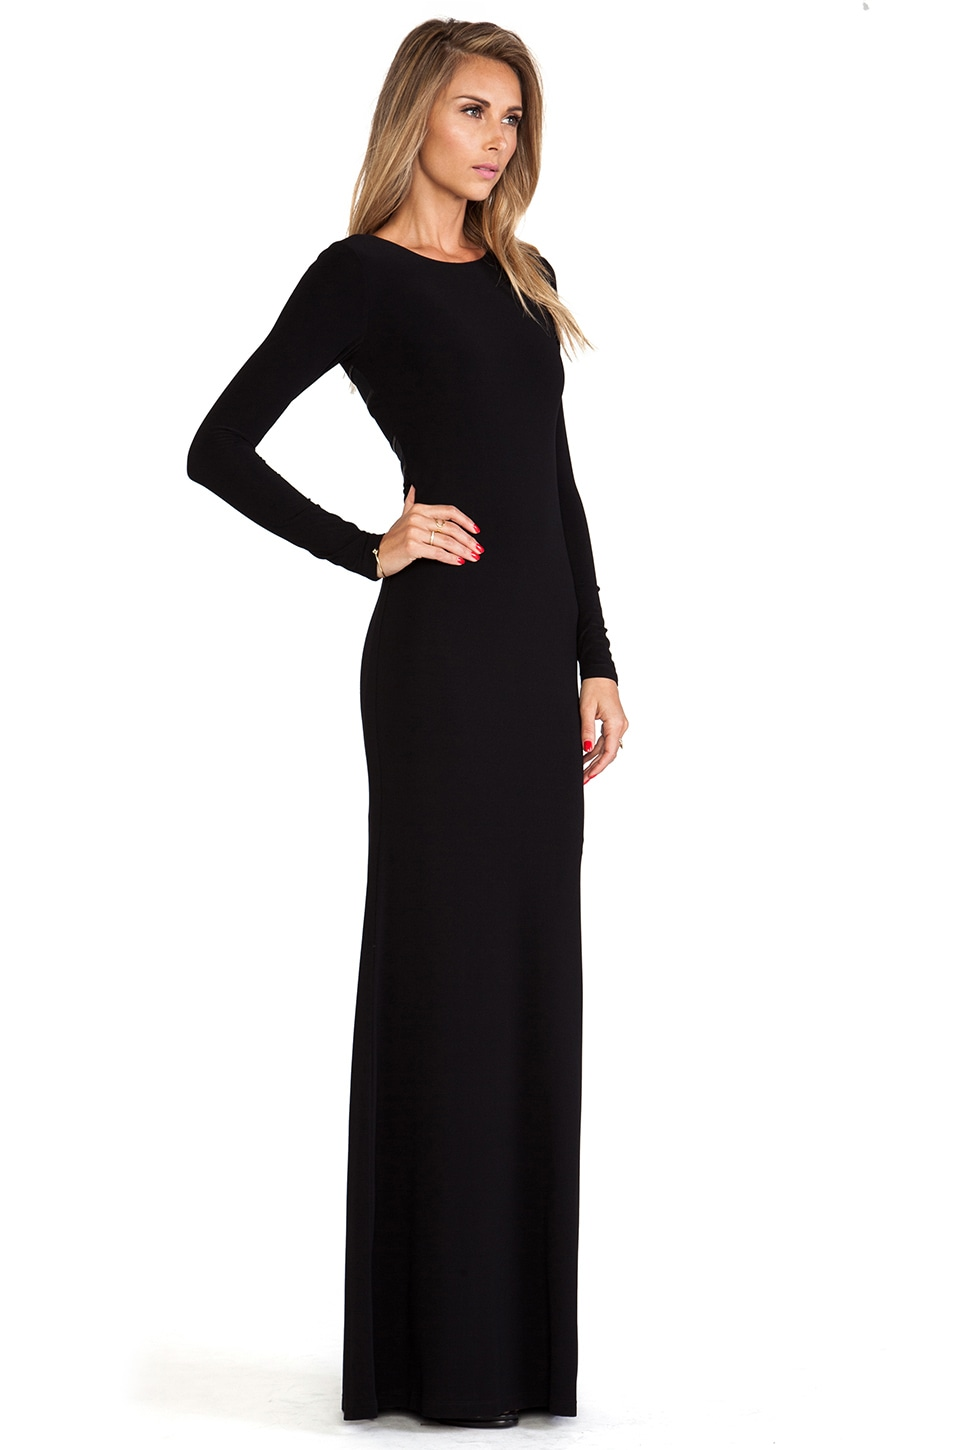 Alice   Olivia Long Sleeve Maxi Dress in Black | REVOLVE